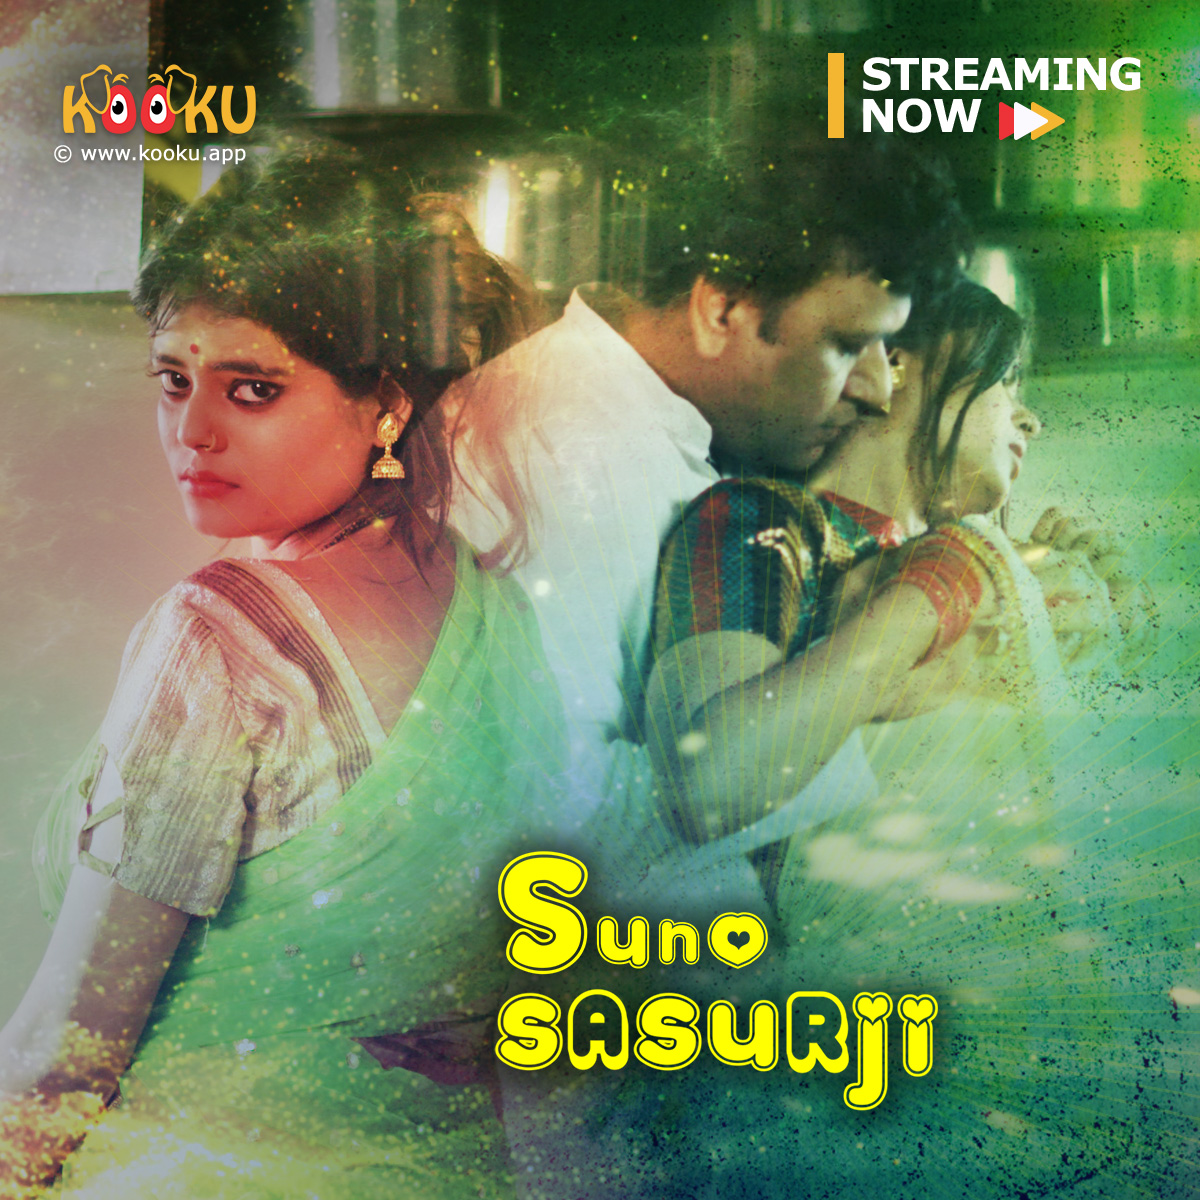 [18+] Suno Sasurji (2020) Kooku Originals Short Film